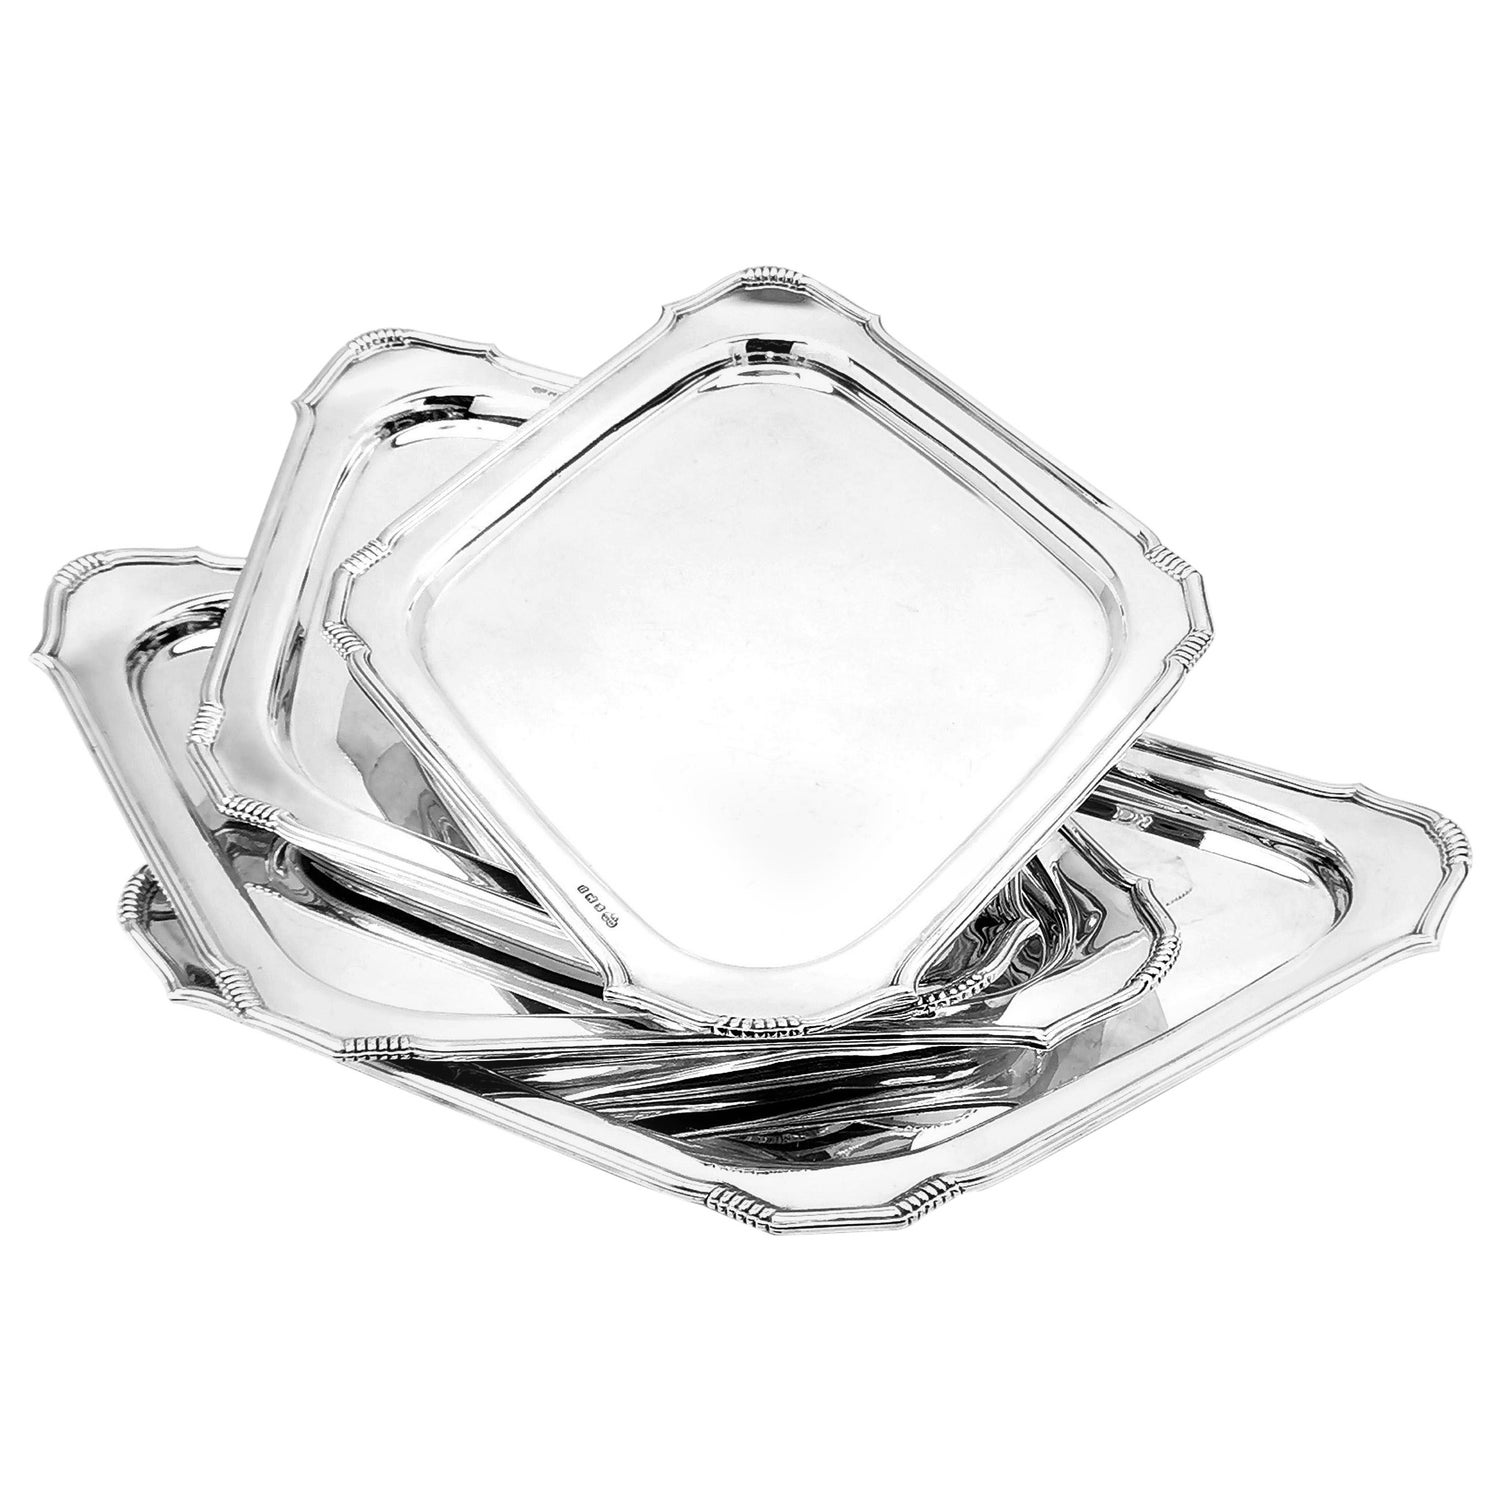 Set of 4 Sterling Silver Art Deco Serving Platters / Trays / Salvers 1956